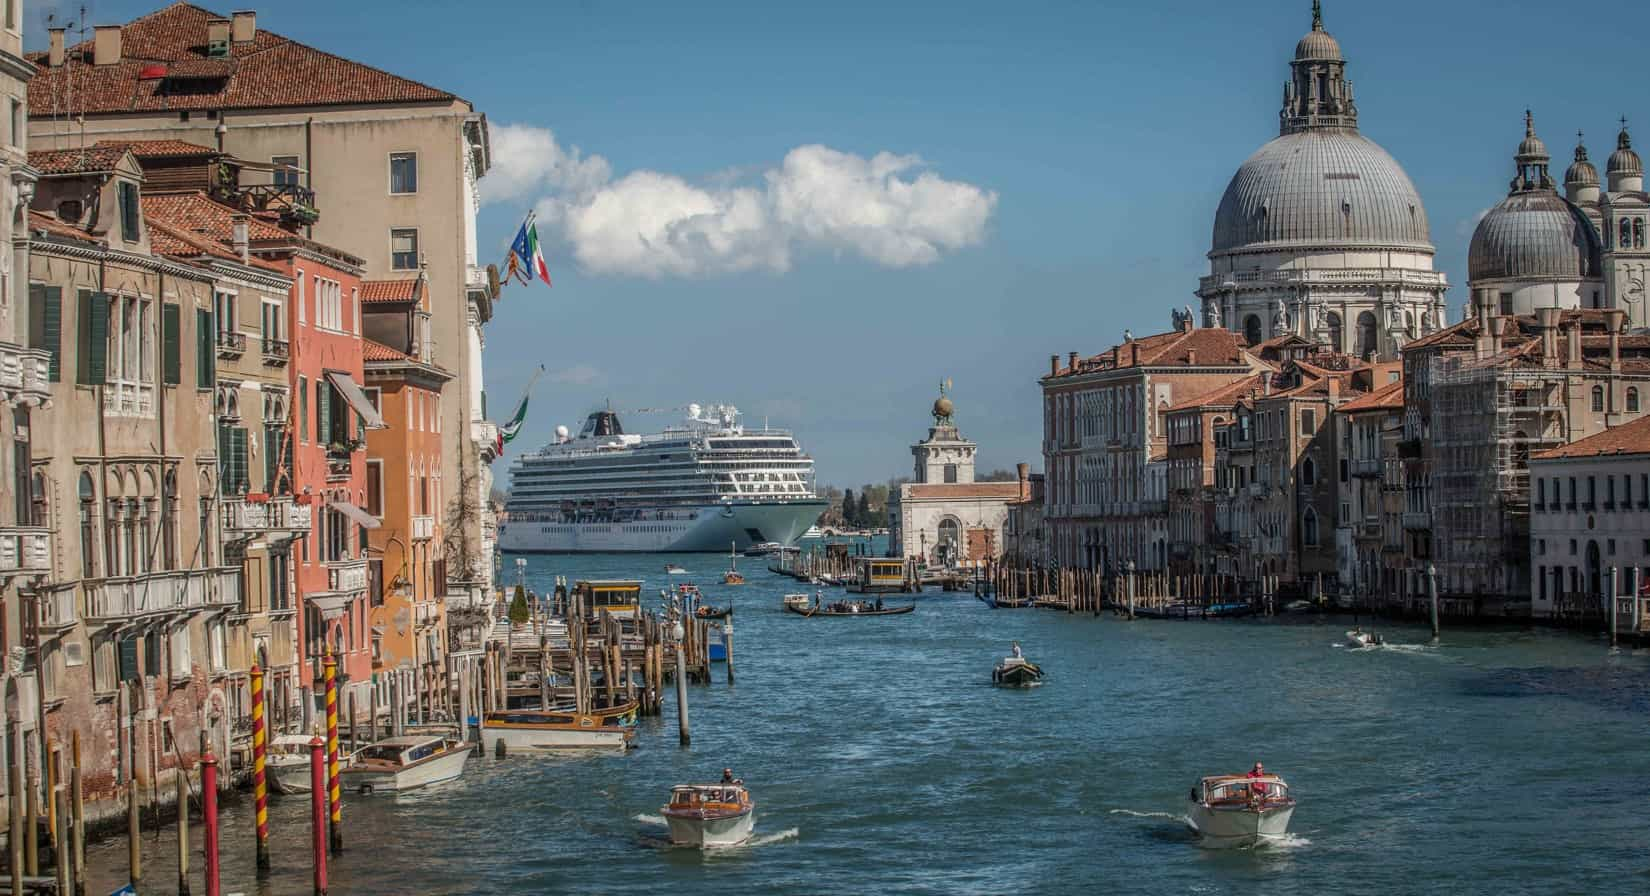 Viking Star in Venice, Italy